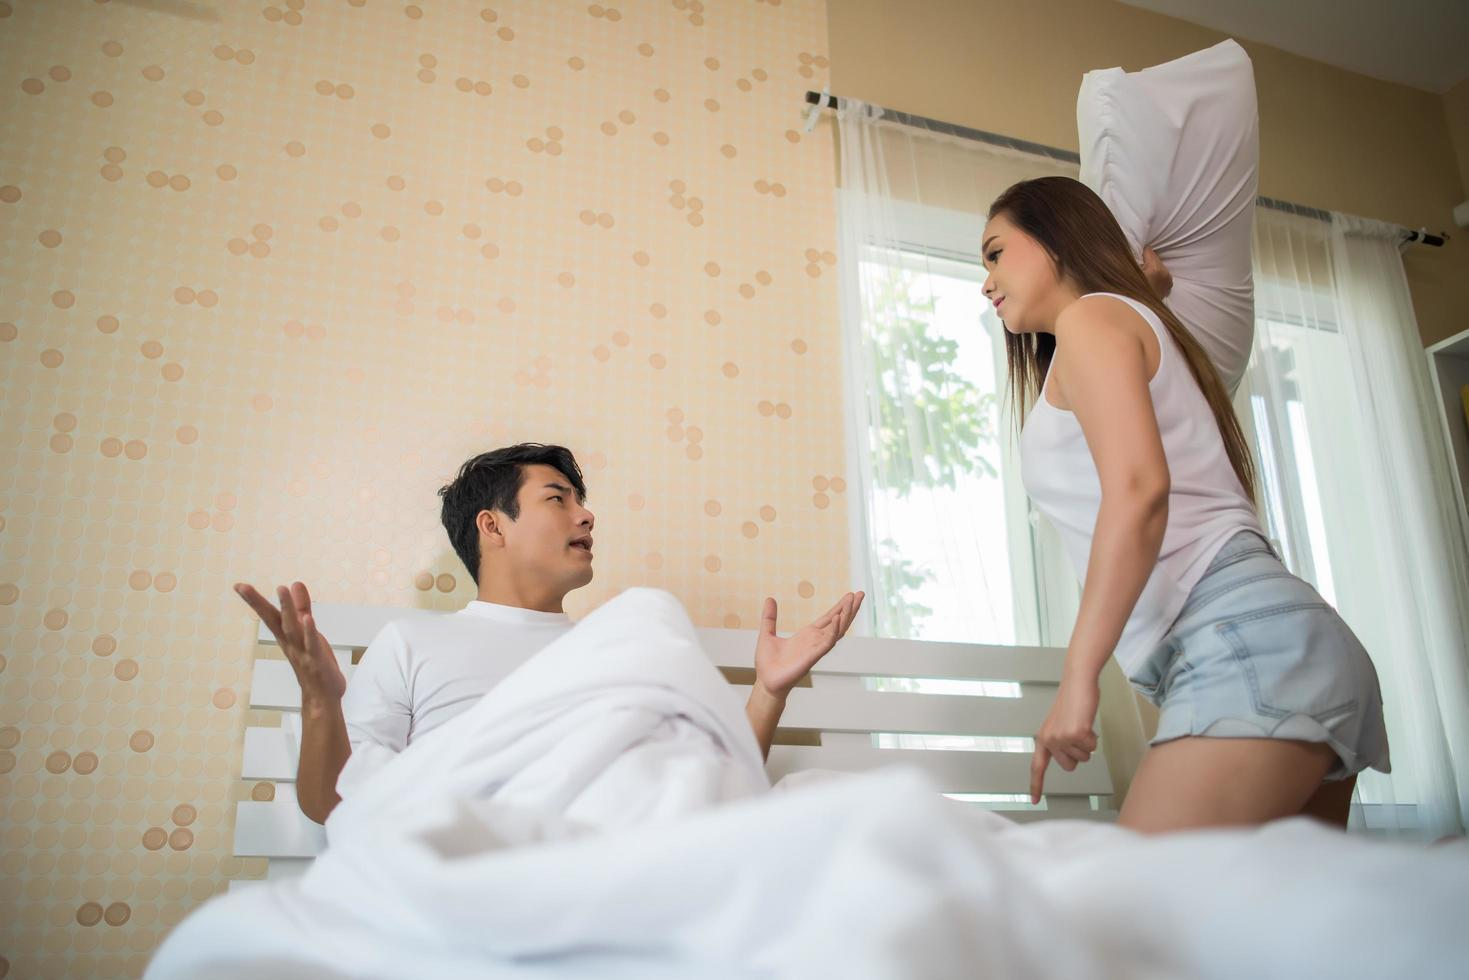 Unhappy couple having an argument in their bedroom photo